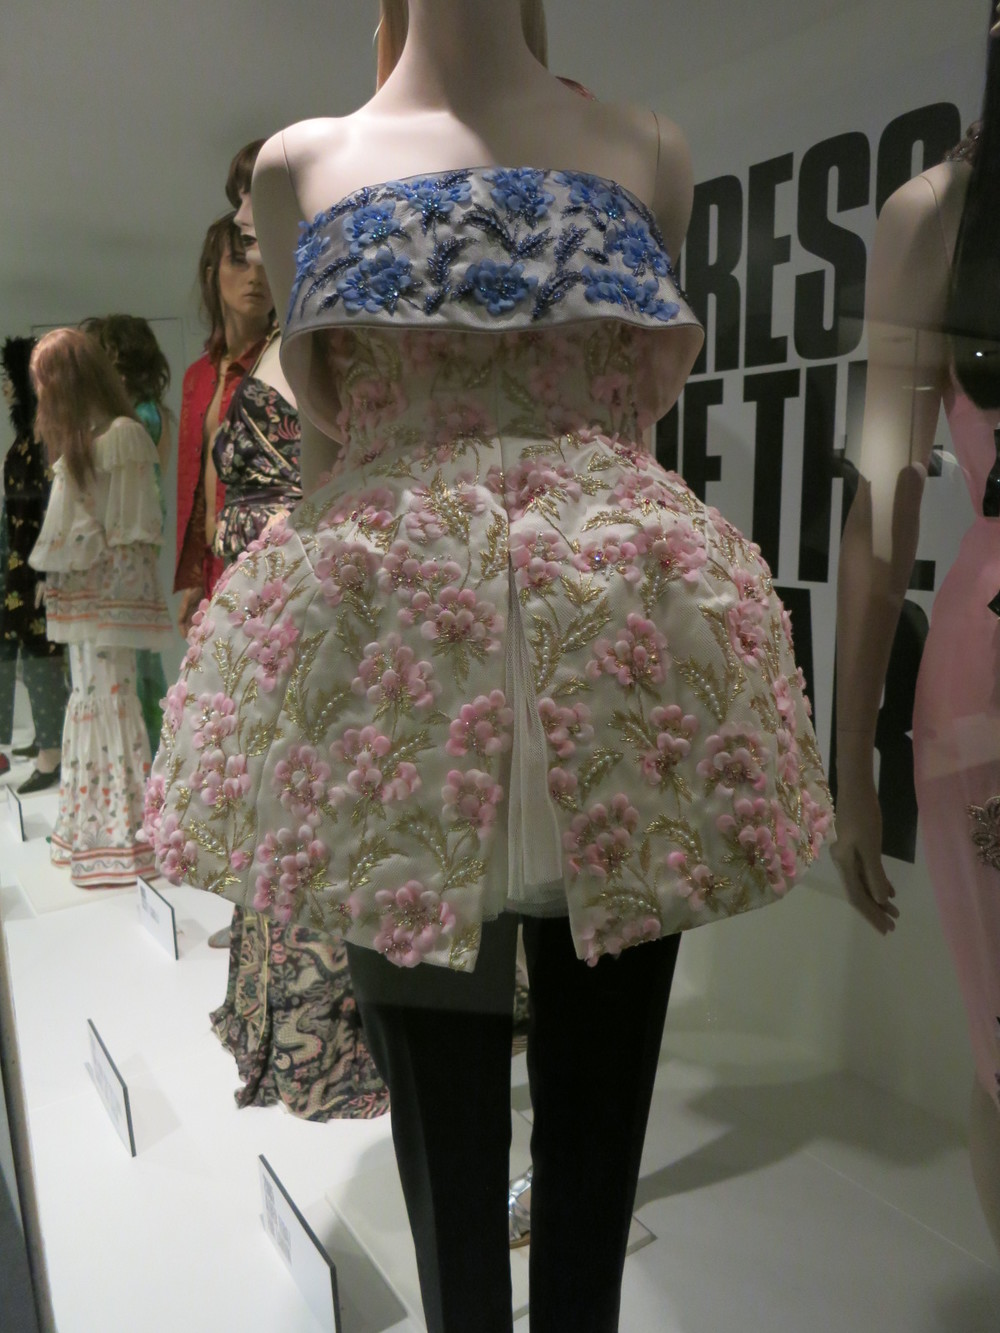 'Dress of the Year' Bath Fashion Museum - Raf Simon's ensemble for Dior was voted 'Dress of the Year' for 2012